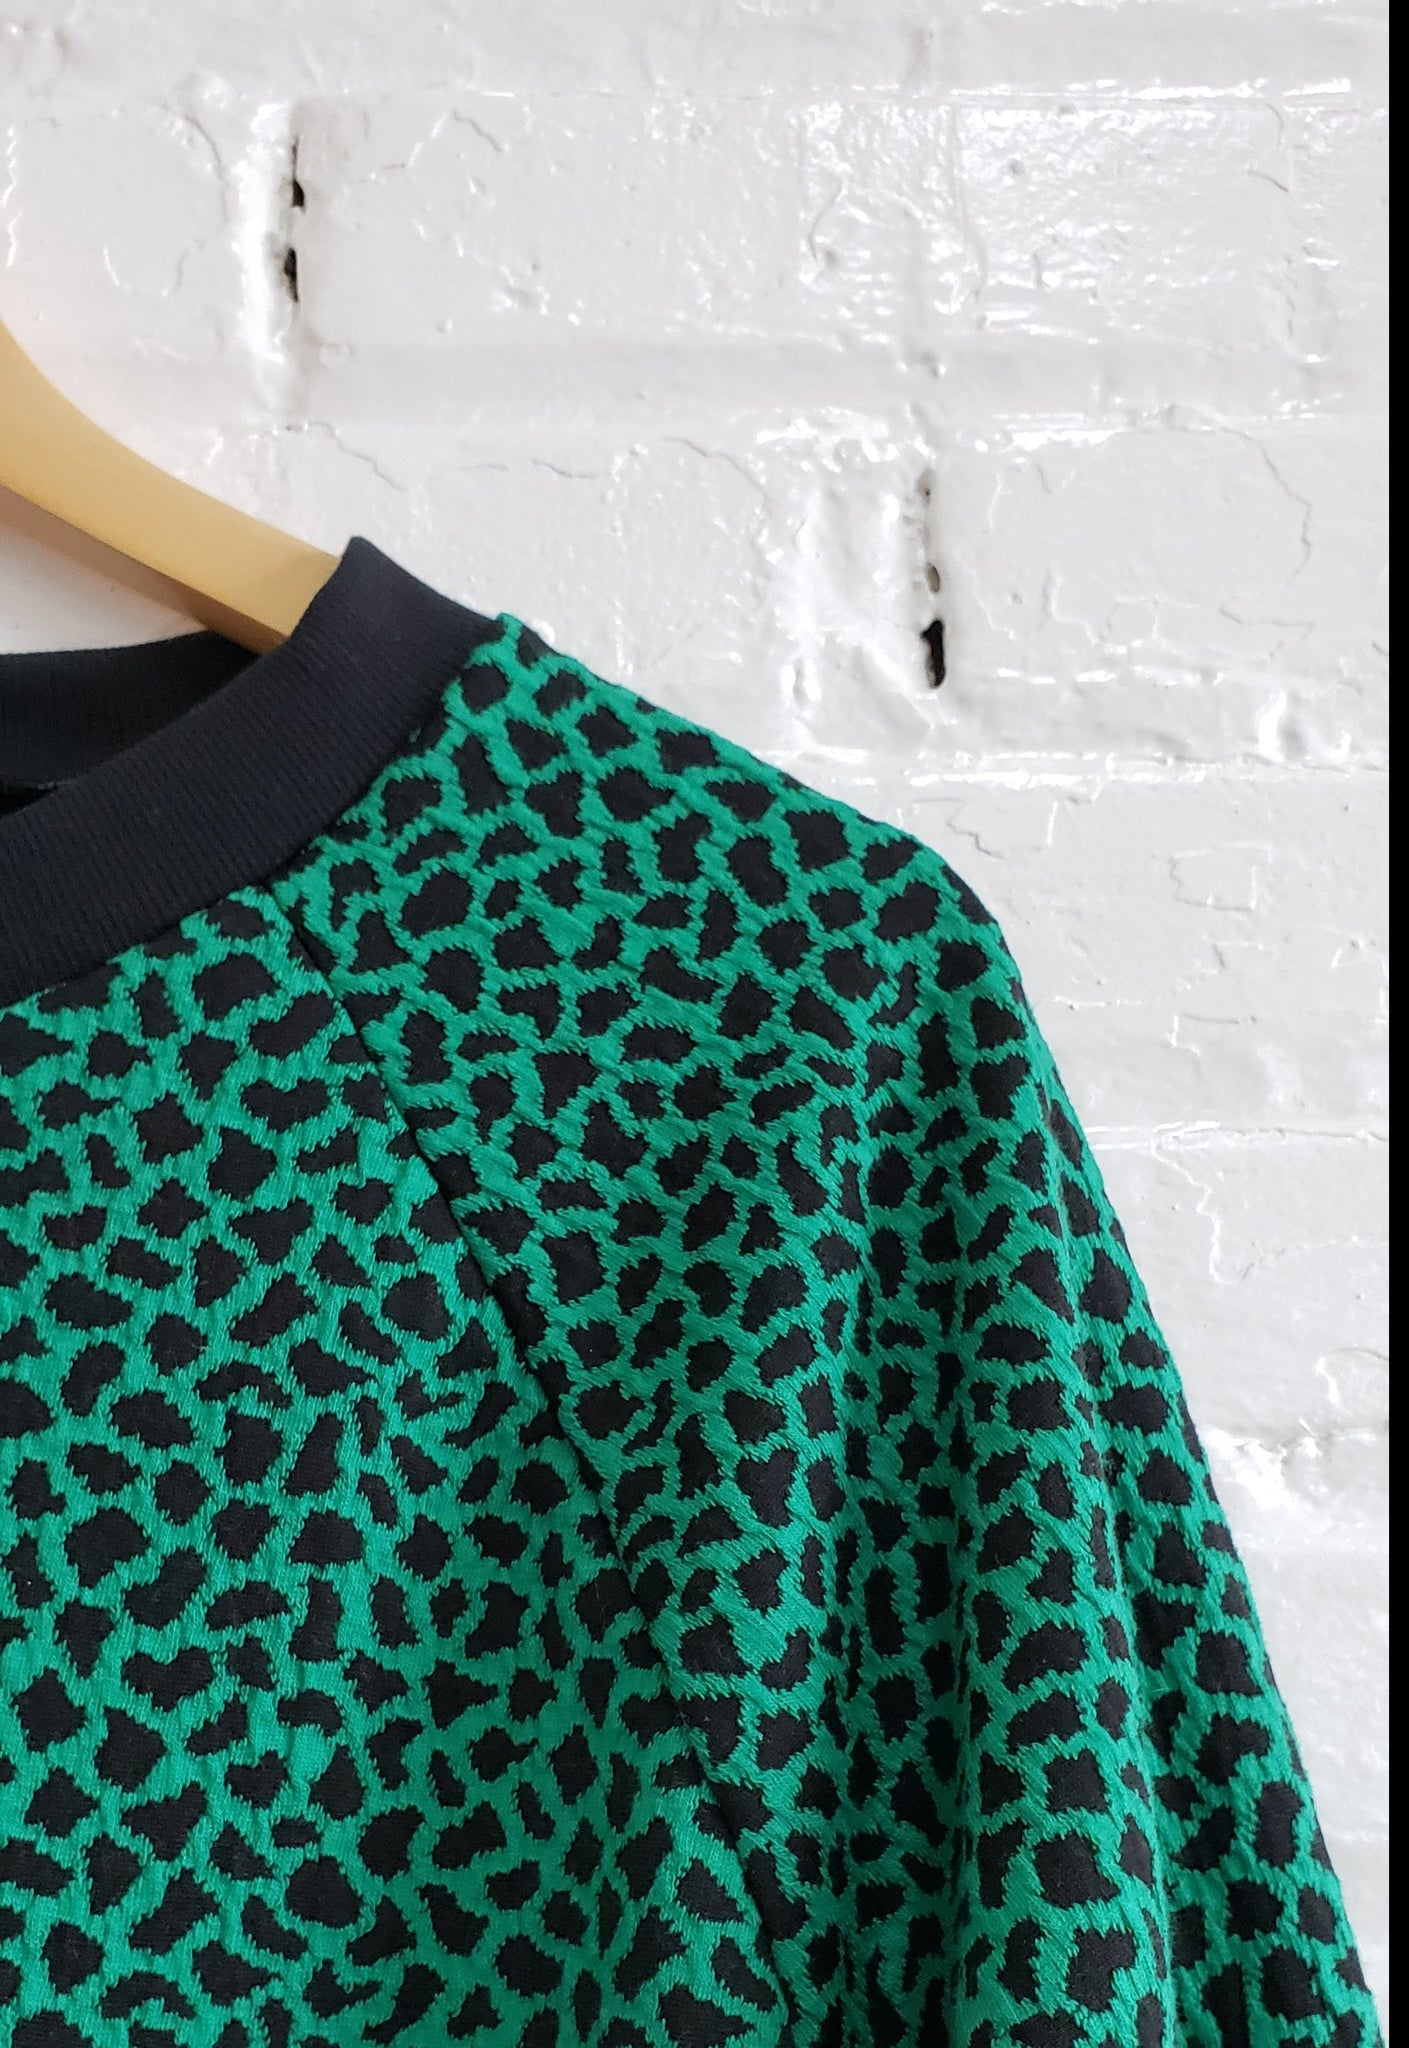 close up of bright green with black speckles sweatshirt, showing black rib neckband and raglan sleeve detail